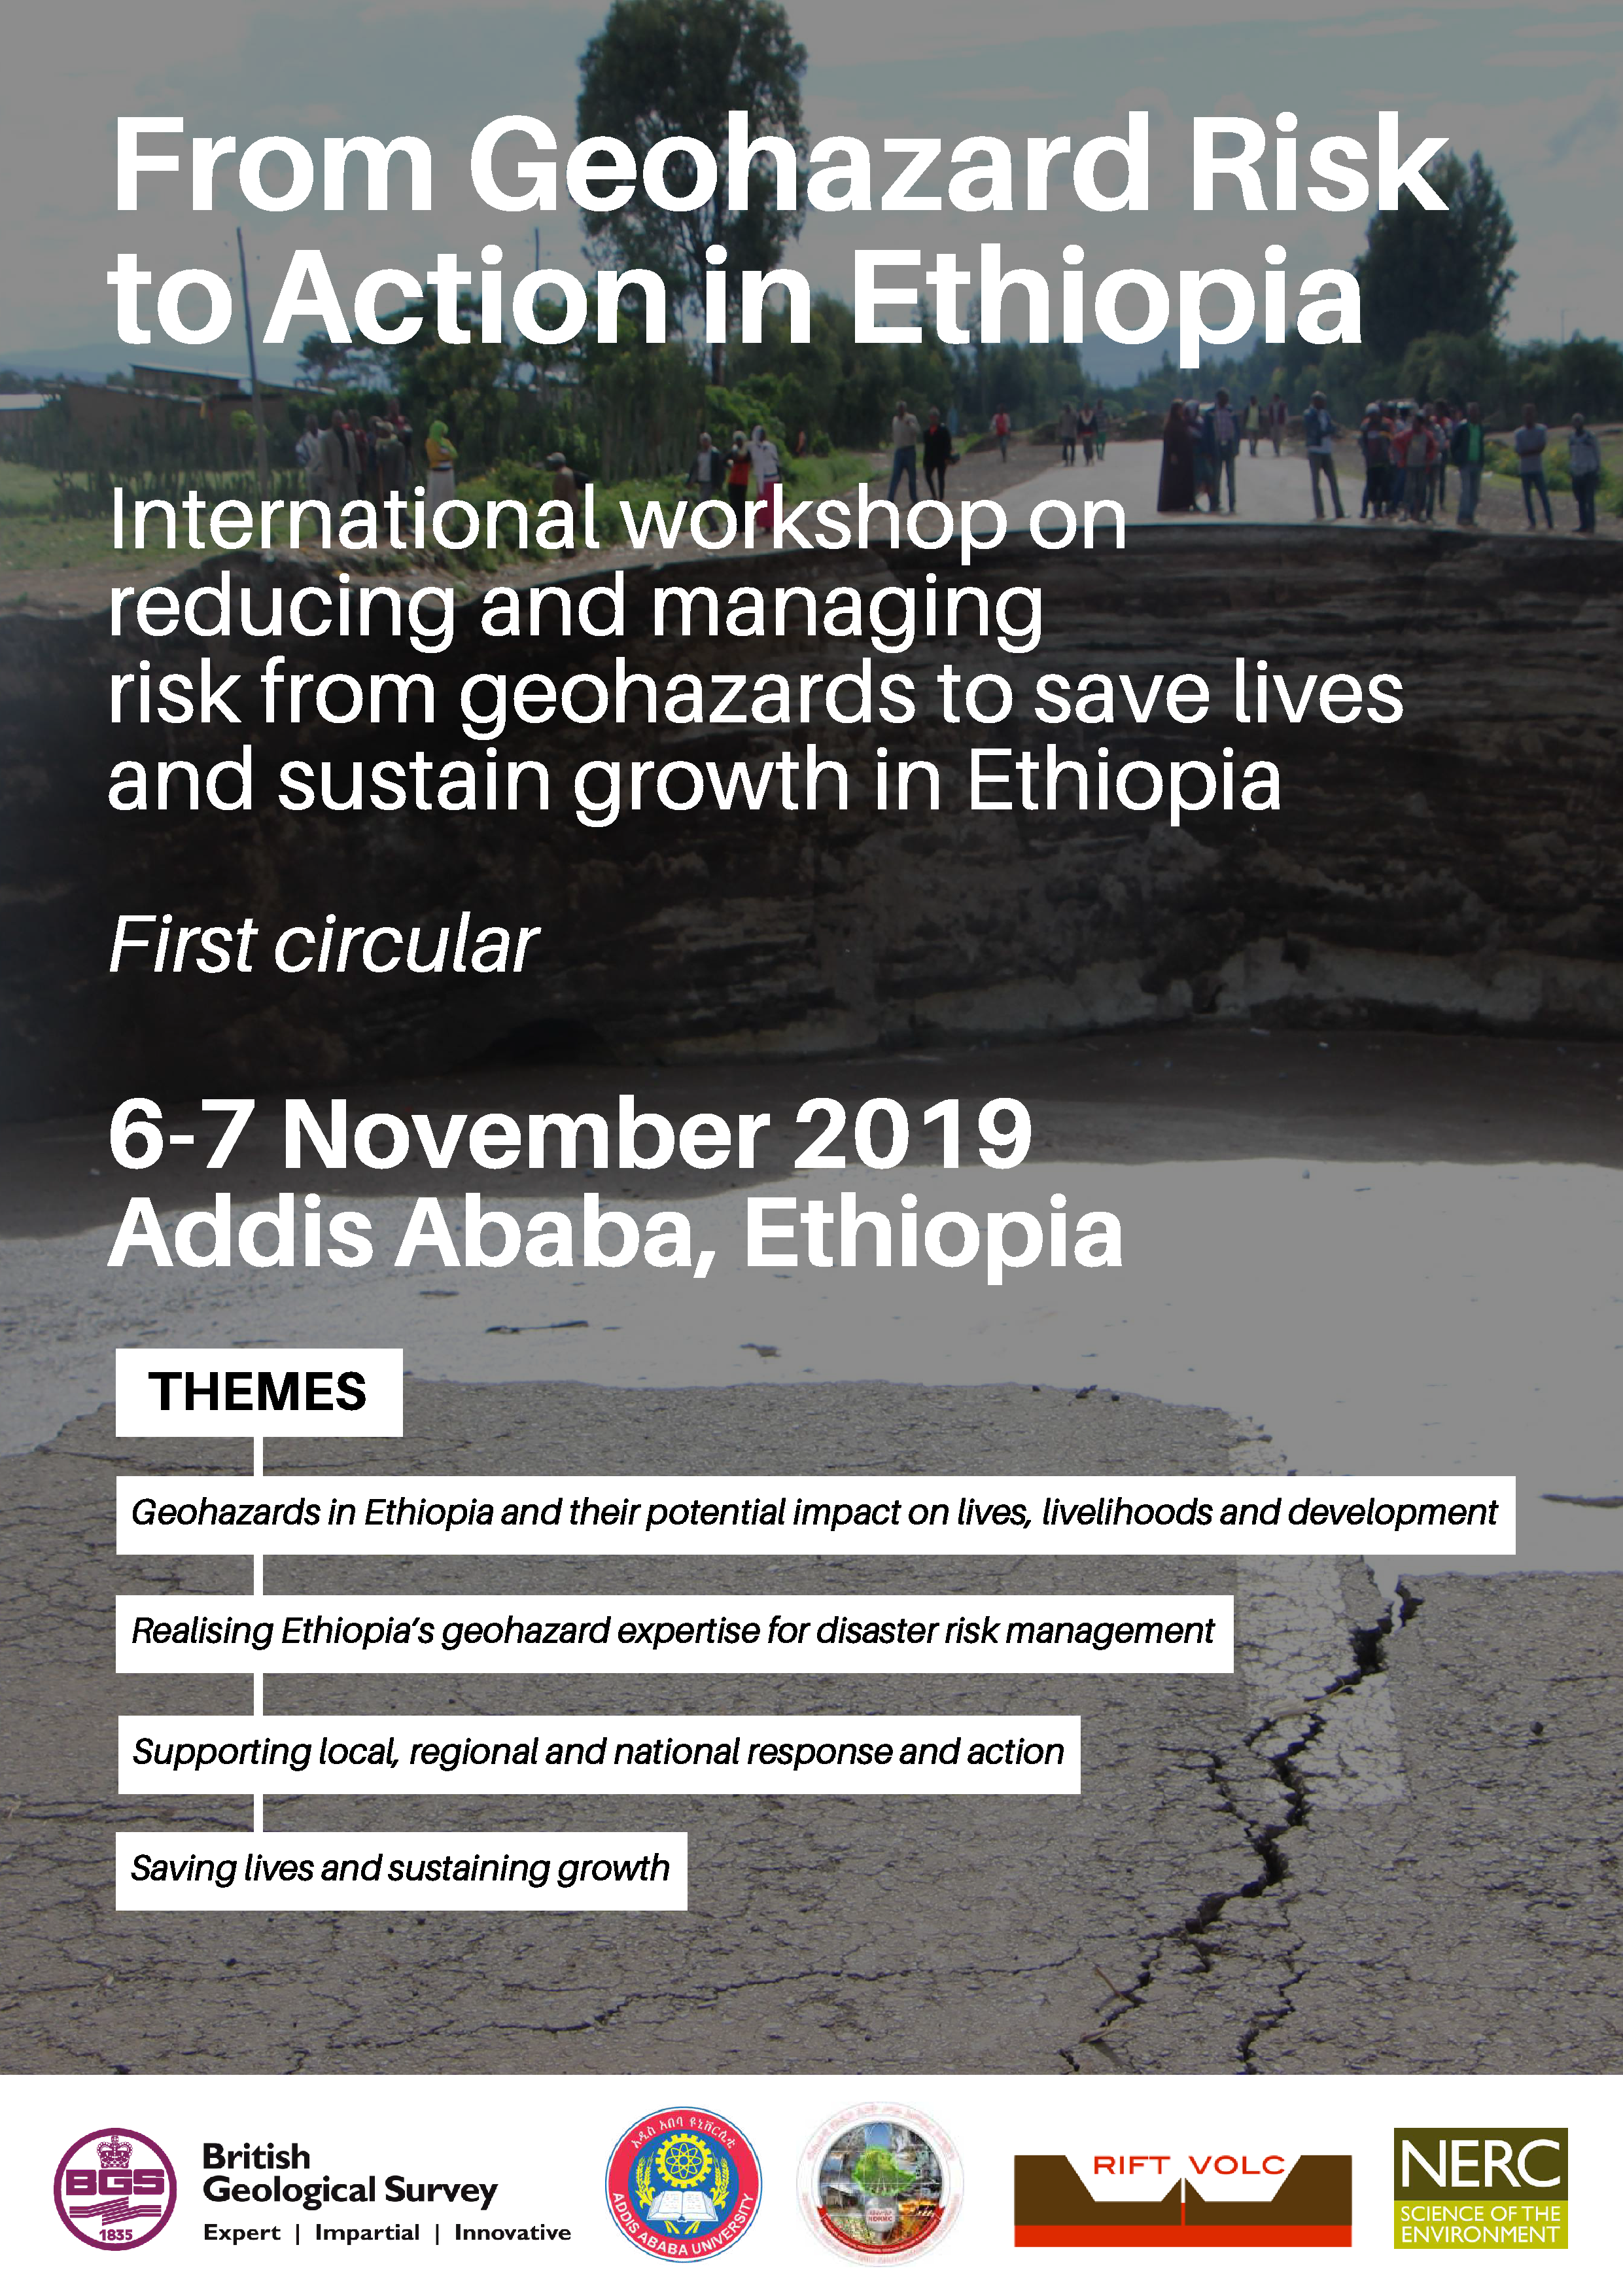 International workshop on reducing and managing risk from geohazards to save lives  and sustain growth in Ethiopia    6-7 November 2019 Addis Ababa, Ethiopia